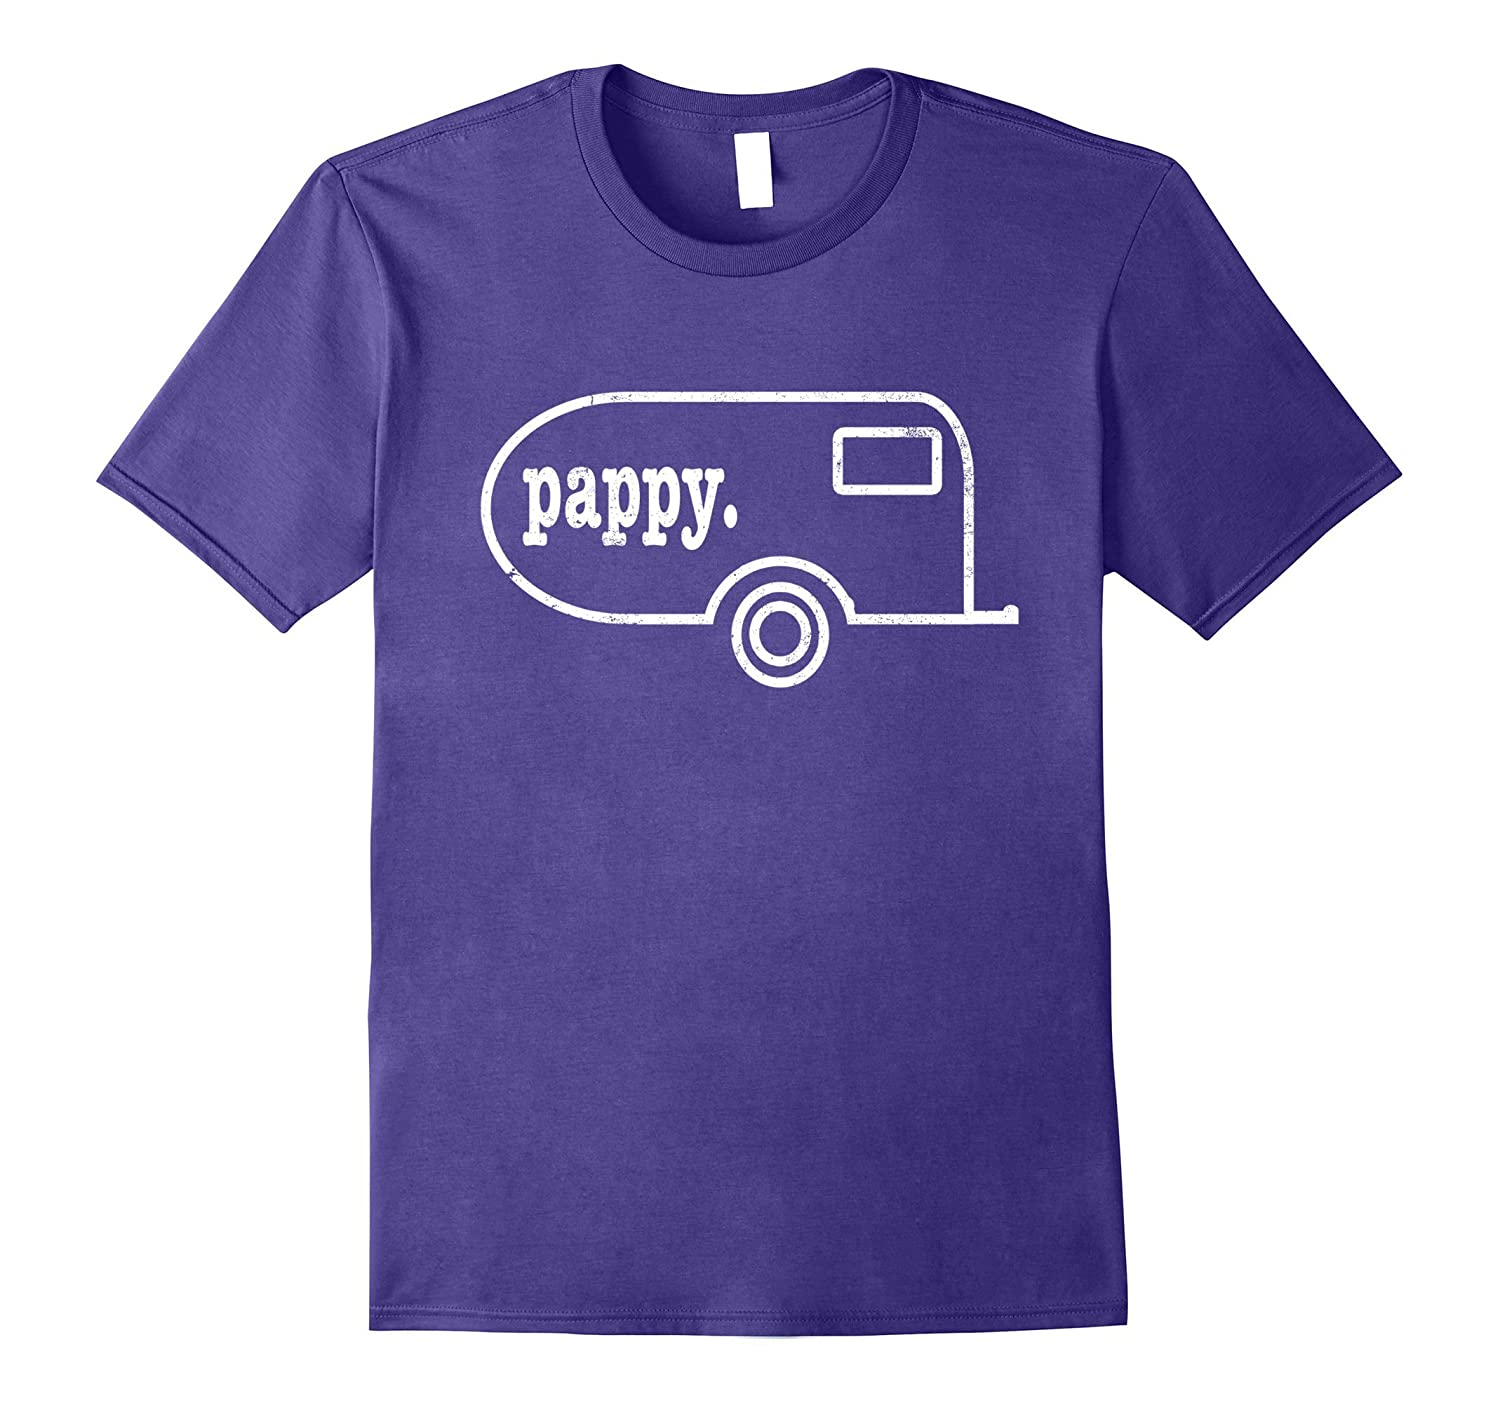 Best Pappy Shirt RV Camping Retirement Shirt